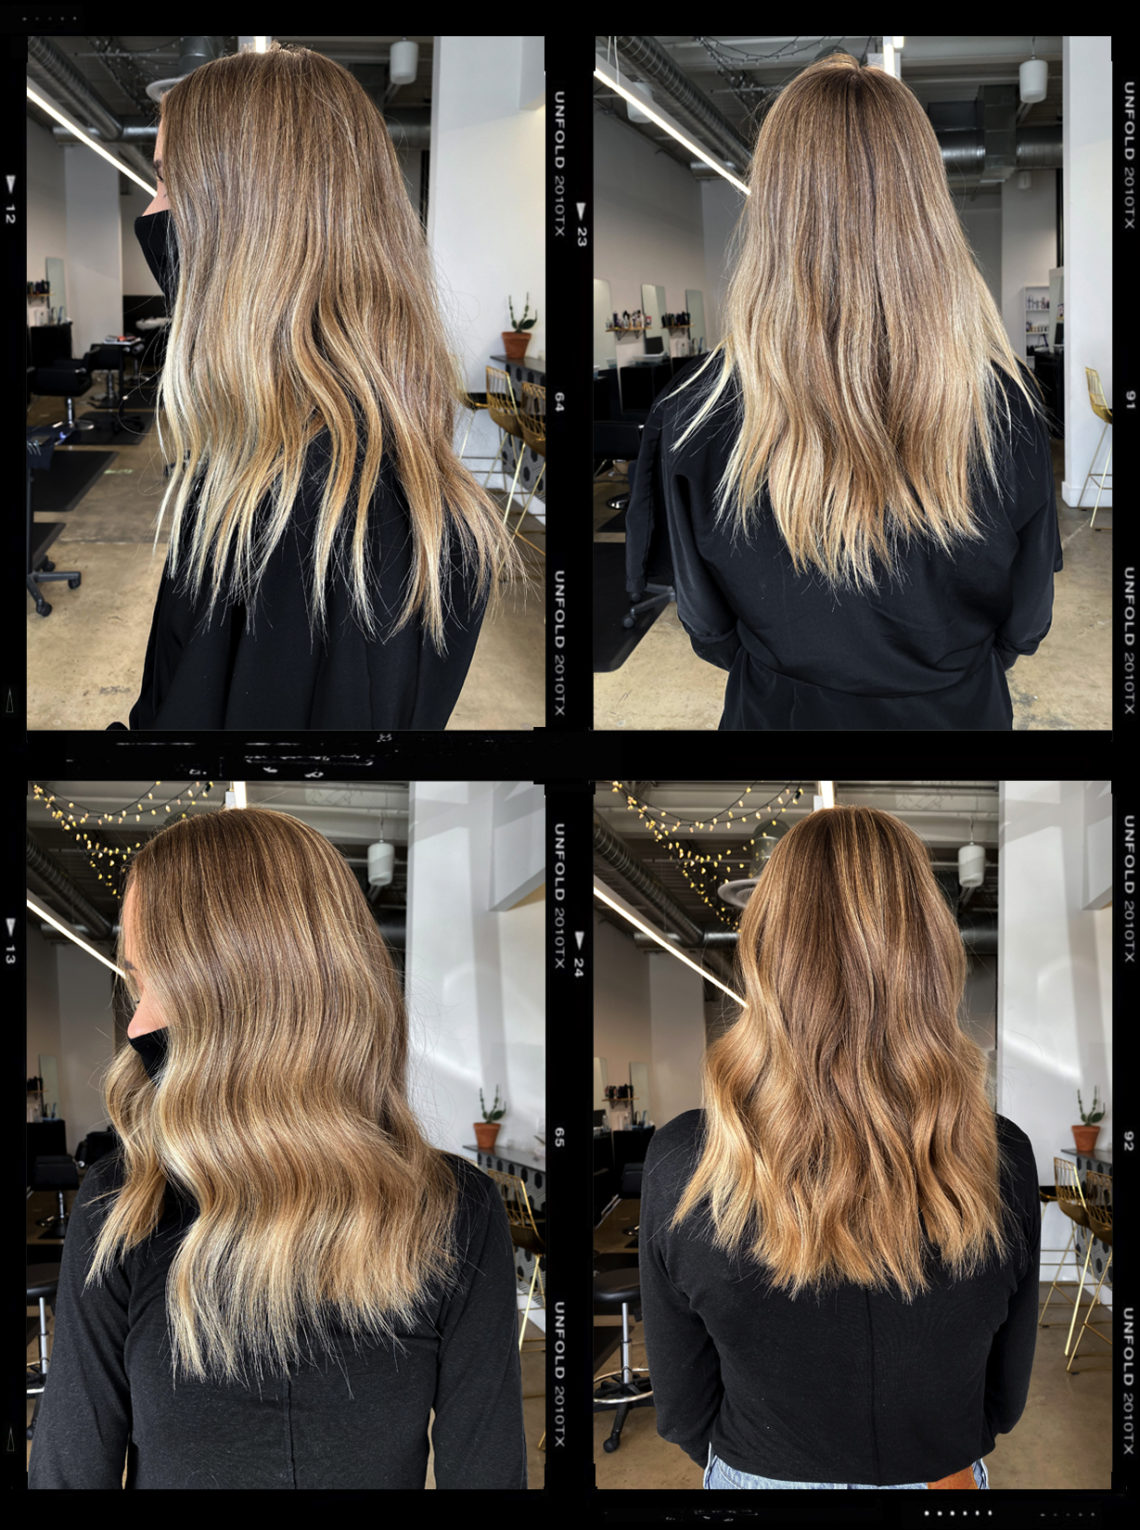 Bronde Hair Before and After